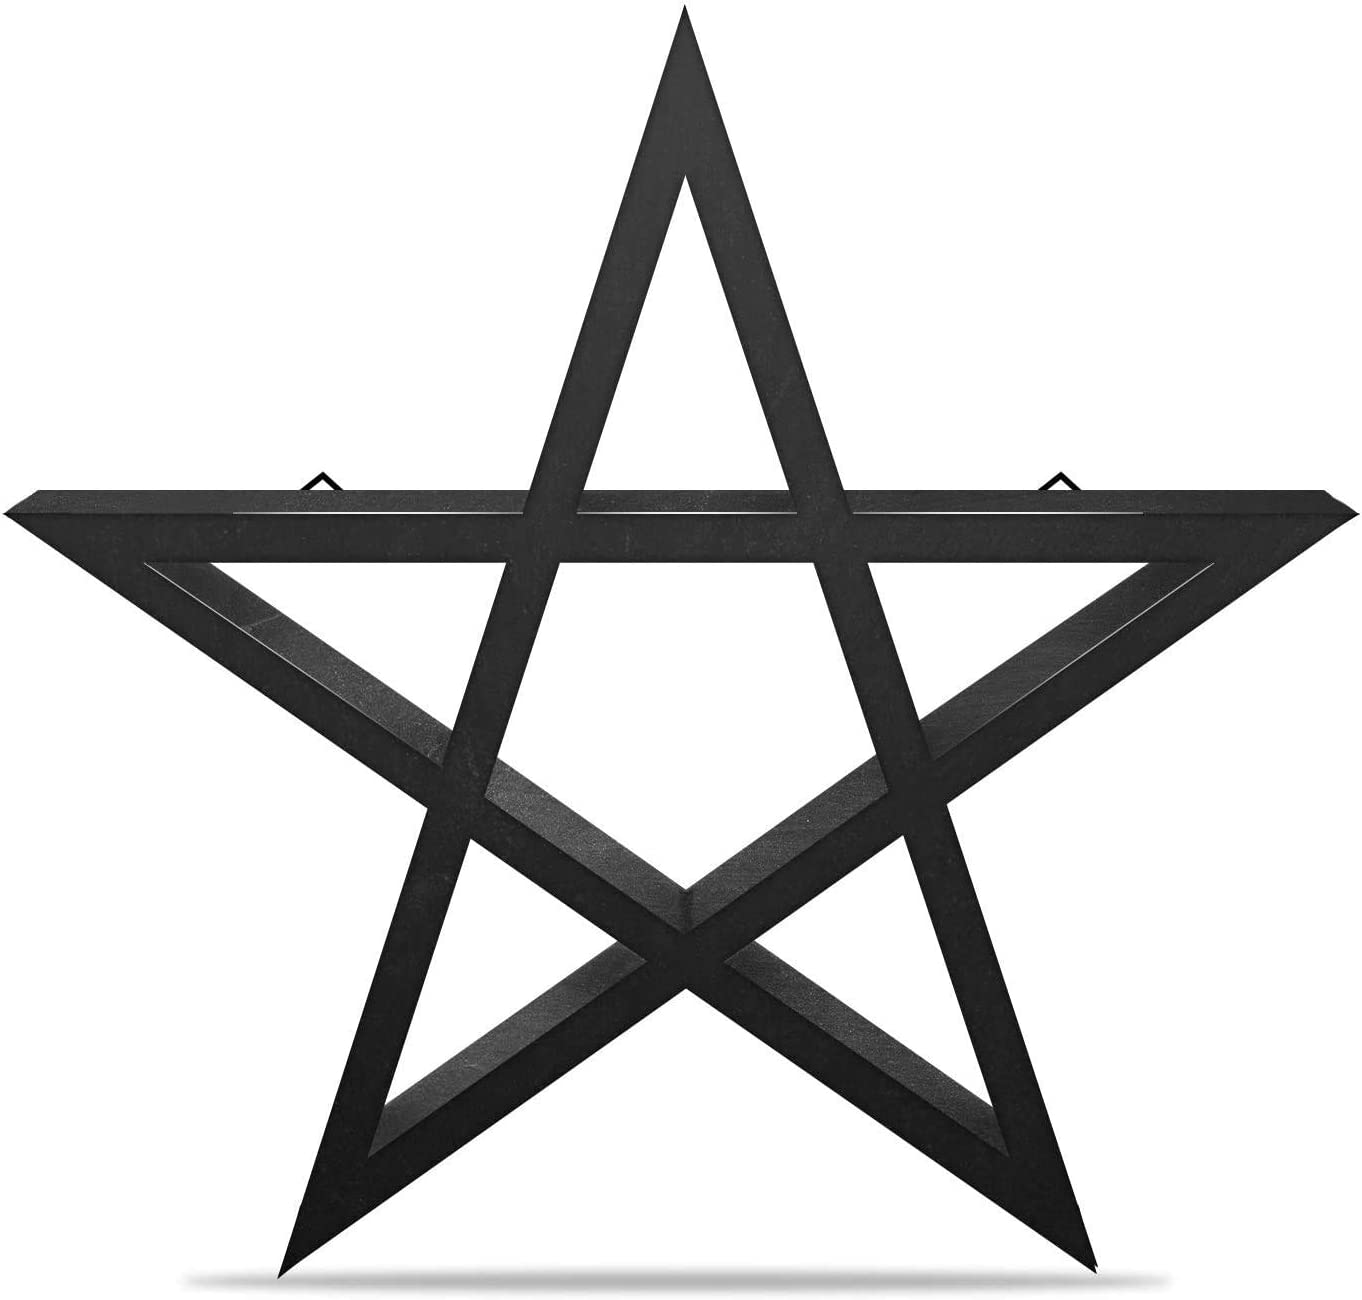 Gothic decor, witch decor Pentagram star Shelf -Perfect for Halloween, goth decor, or witchy room decor. This goth decor star shelf is a great horror or Halloween room decor. 14 in x 2 in deep